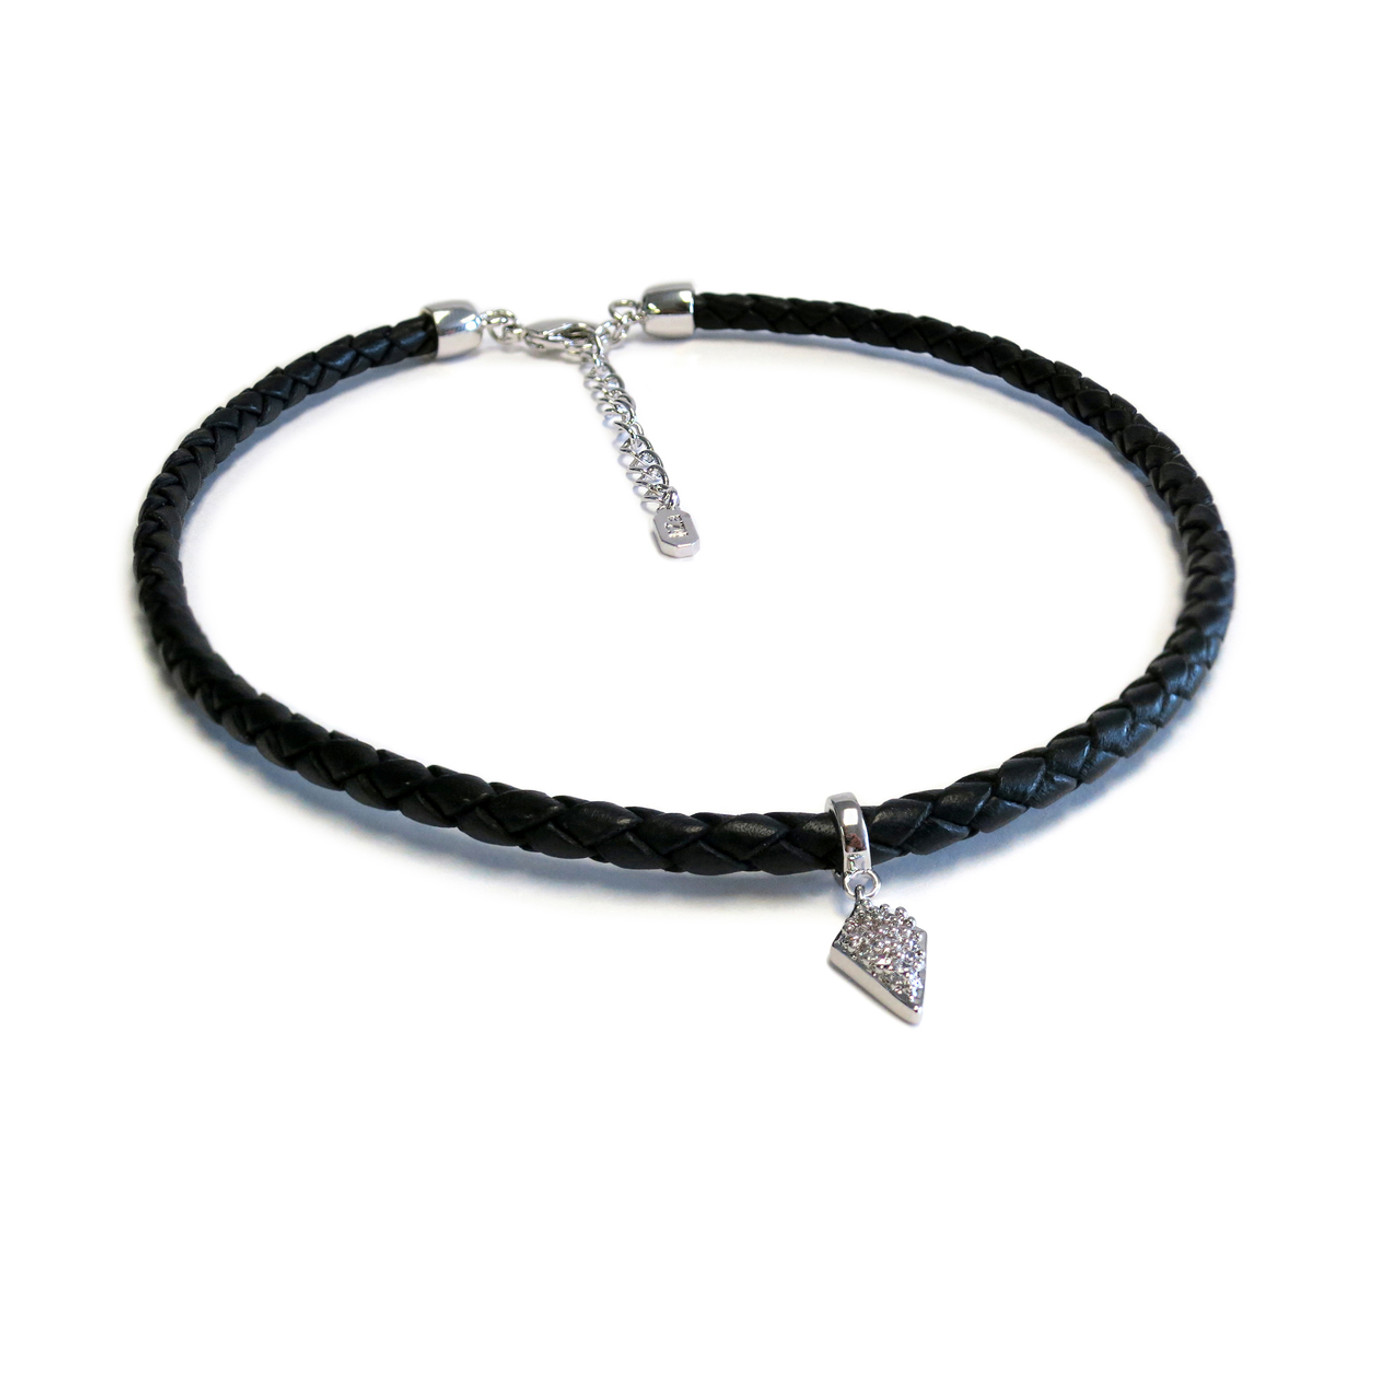 Silver Spike Leather Choker